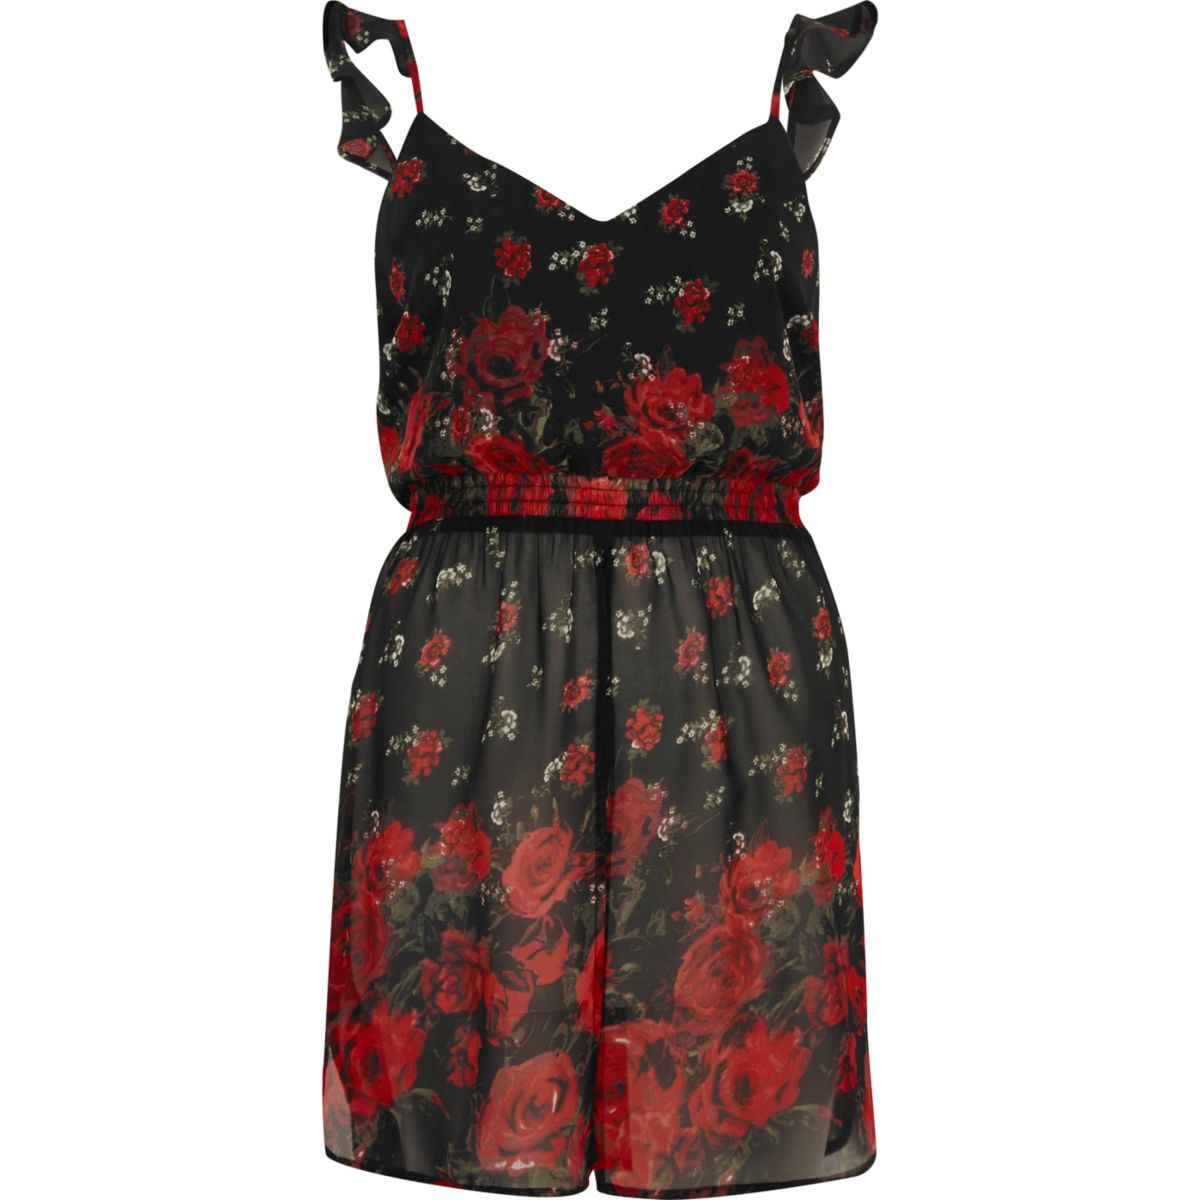 Red floral print longline frill cami top